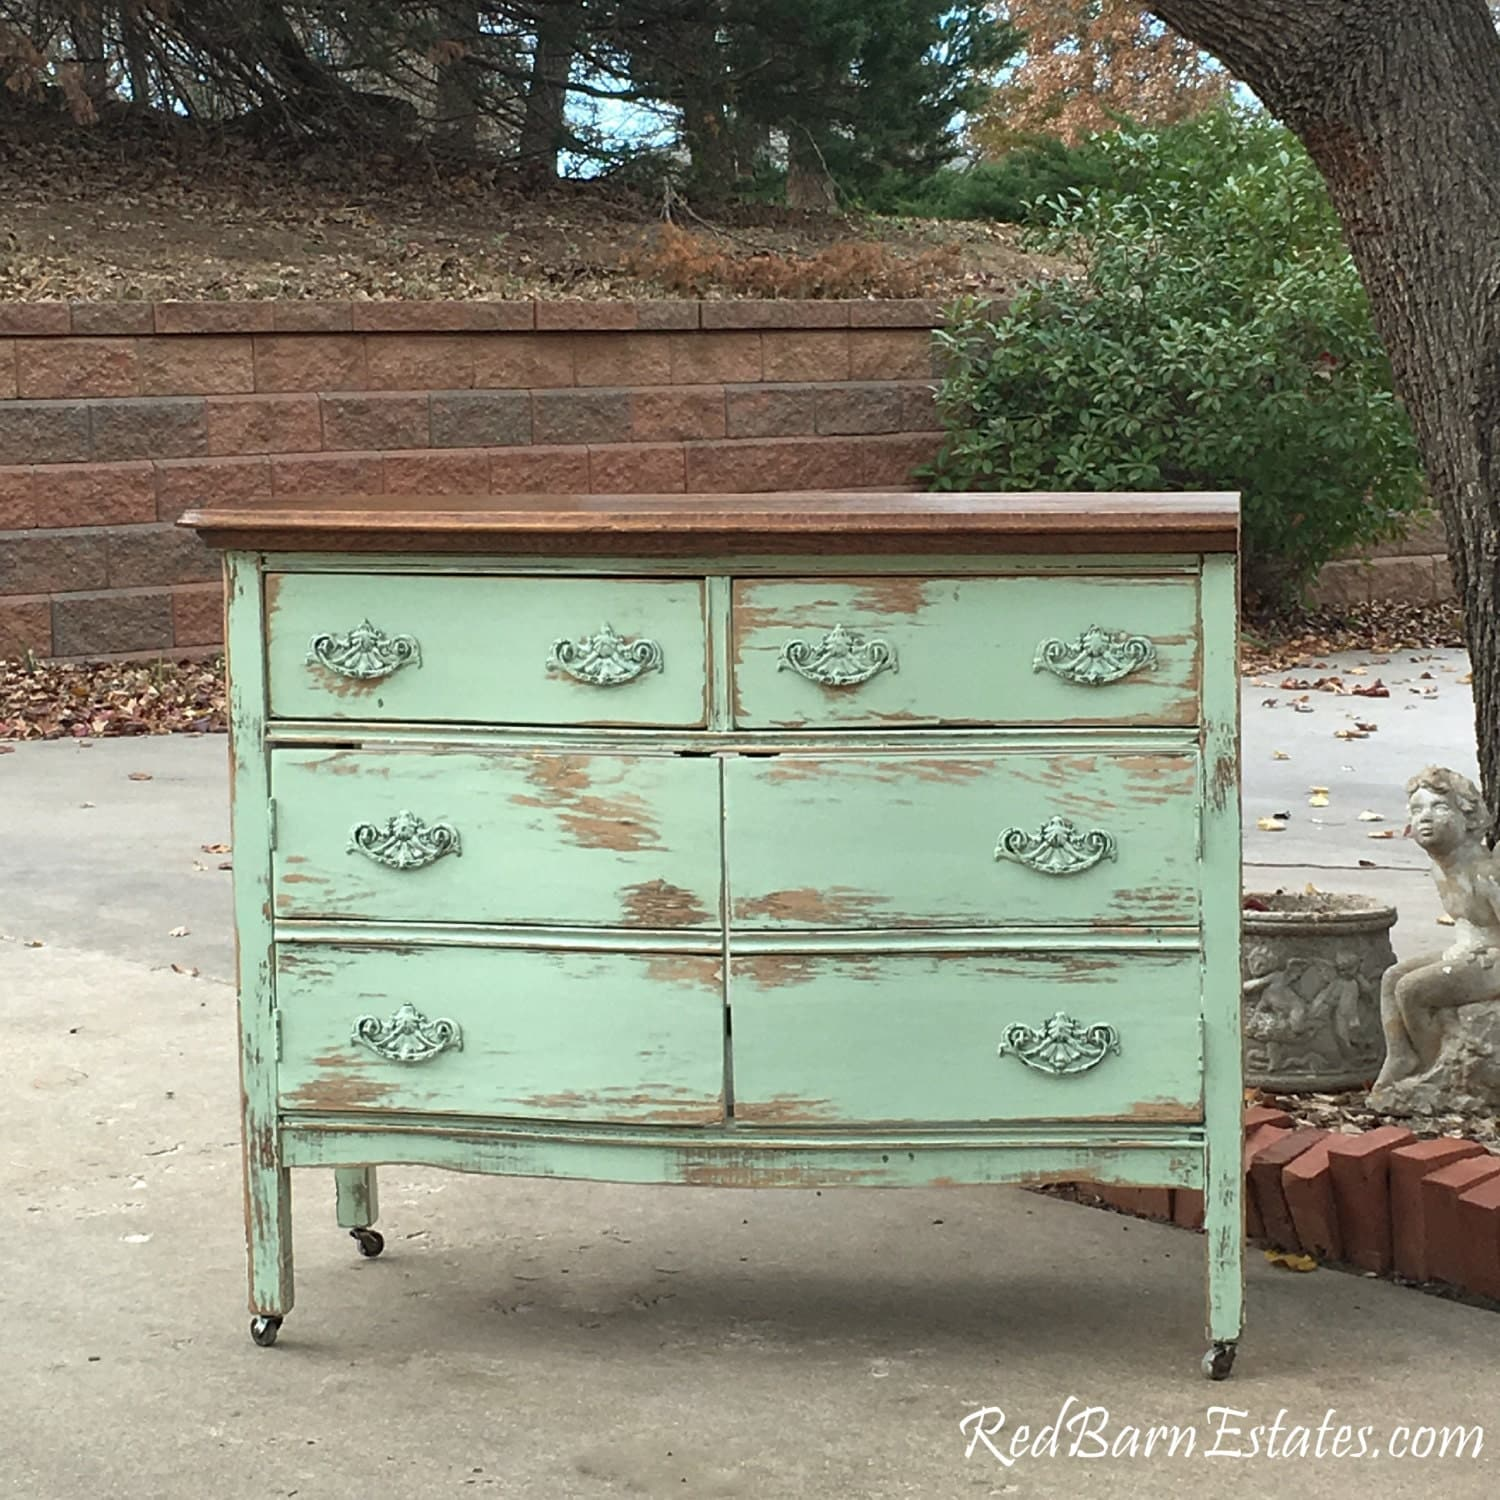 BATHROOM VANITY From Antique Dresser! We Find, Restore ...